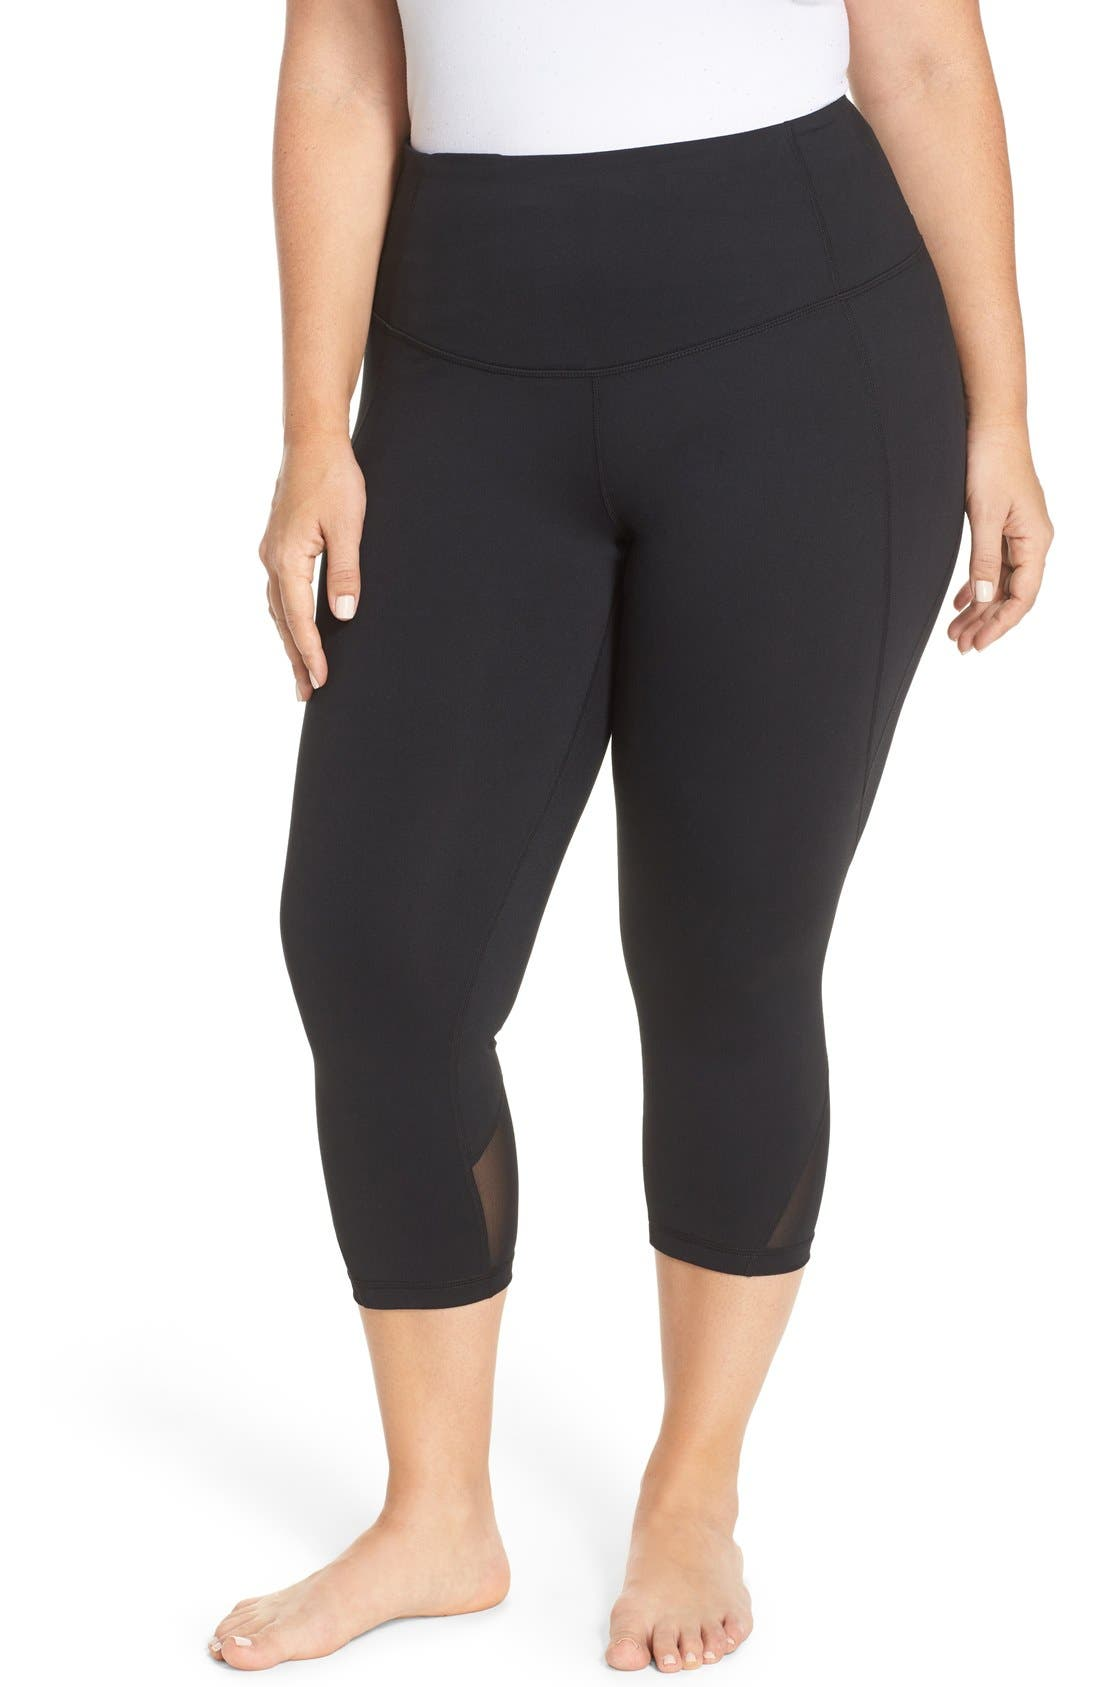 Hatha High Waist Crop Leggings,                             Alternate thumbnail 6, color,                             001